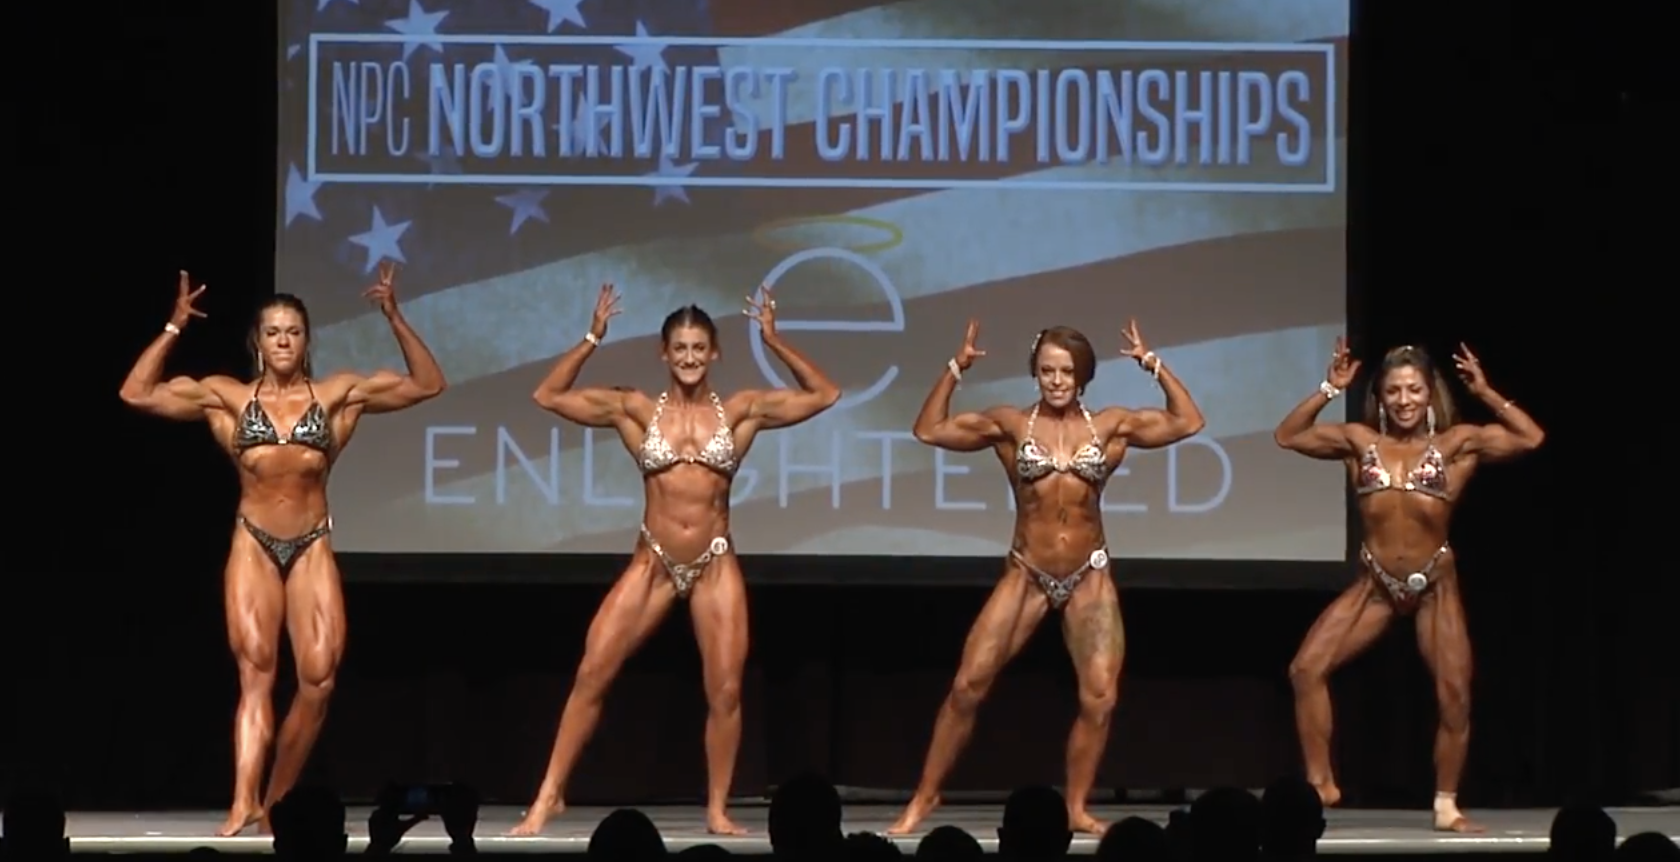 2017 NPC Northwest Championship Women's Physique Overall Video